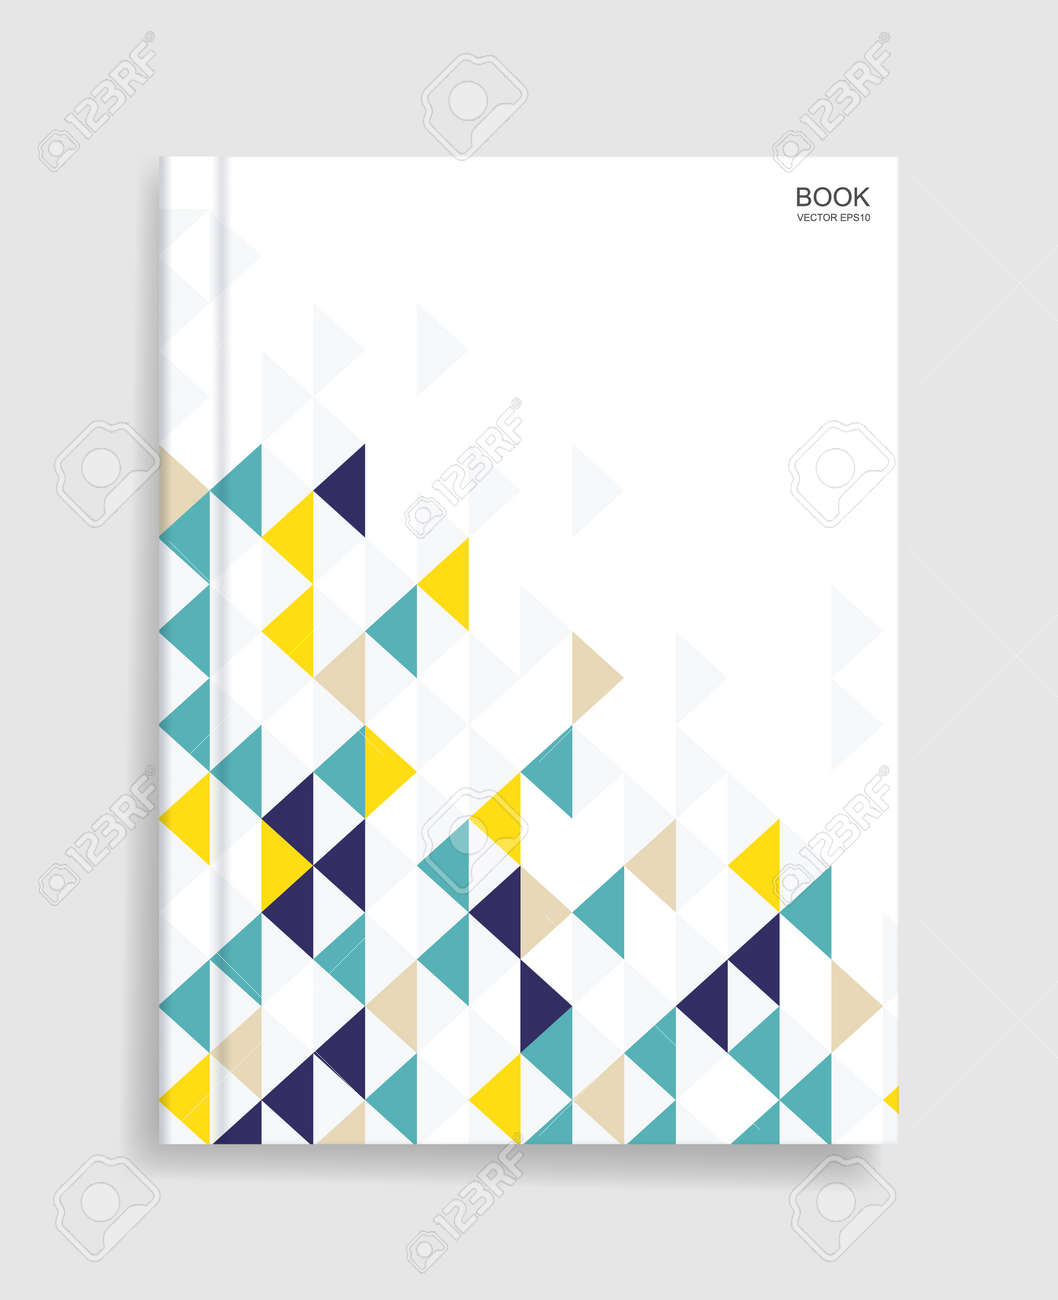 Magazine book template background with cover of colorful geometric pattern and soft shadow. Vector illustration. - 155940867